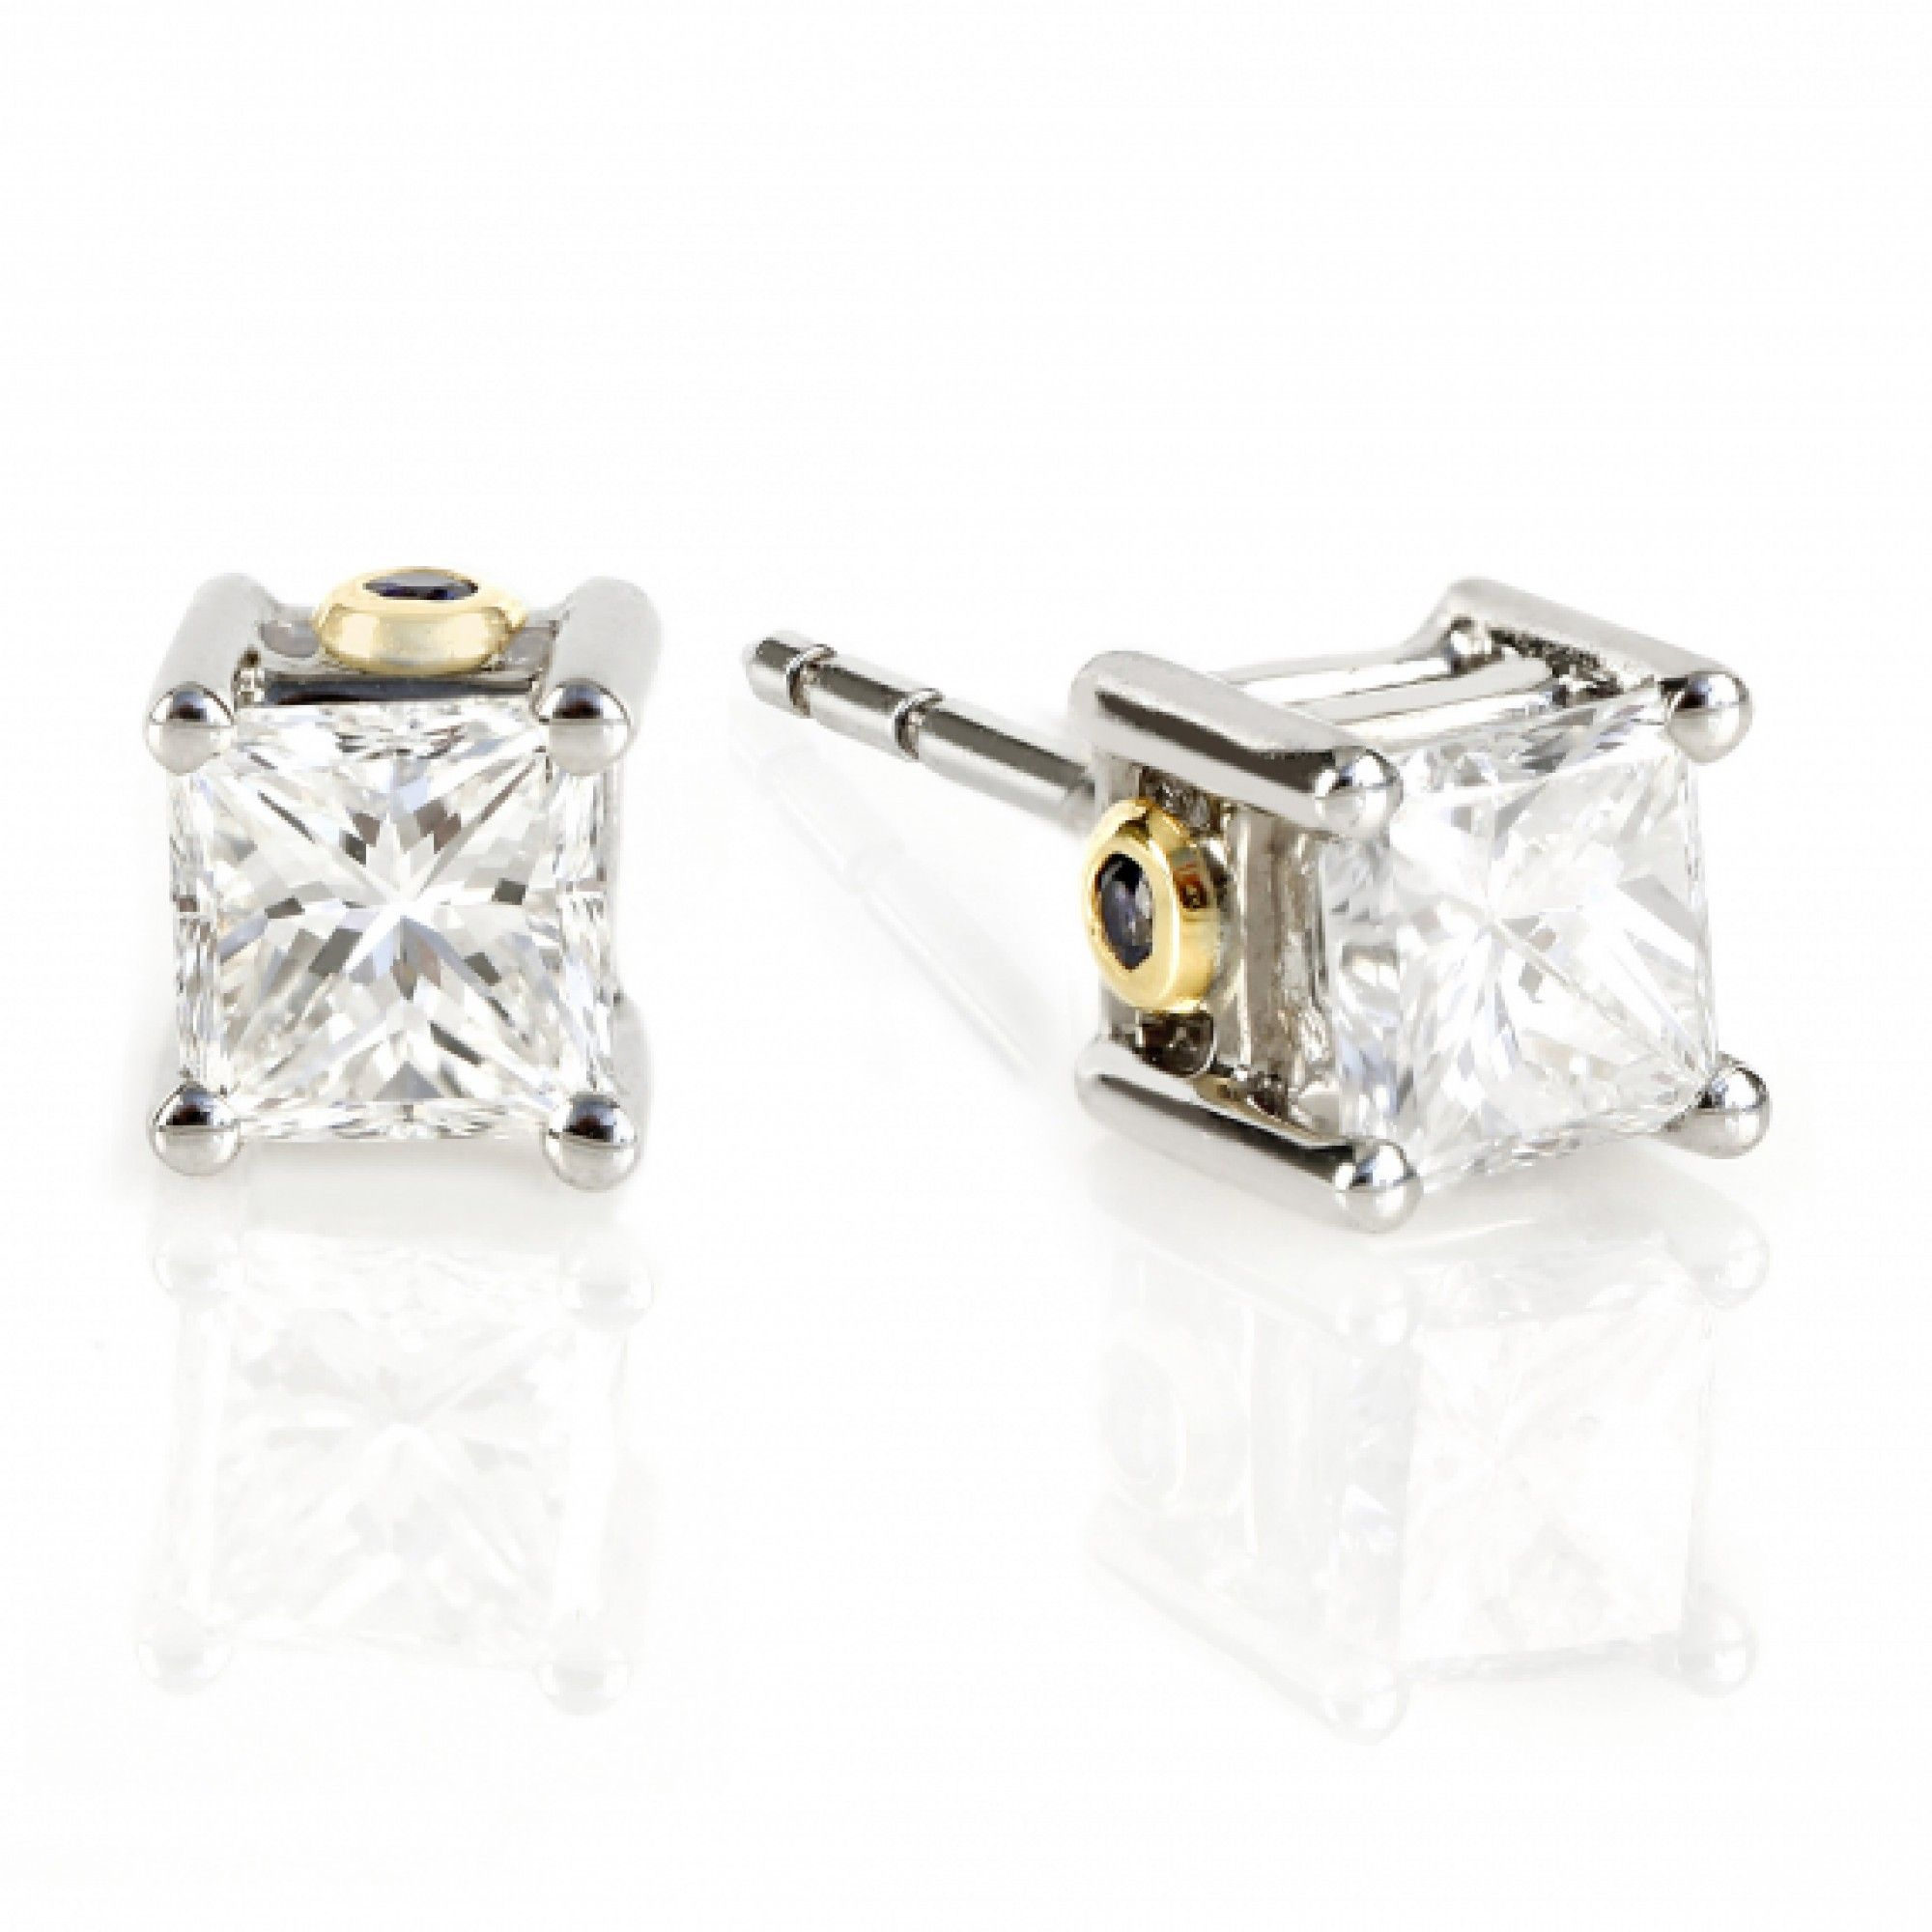 stud today diamond overstock g shipping h watches white tdw jewelry free earrings gold solitaire product